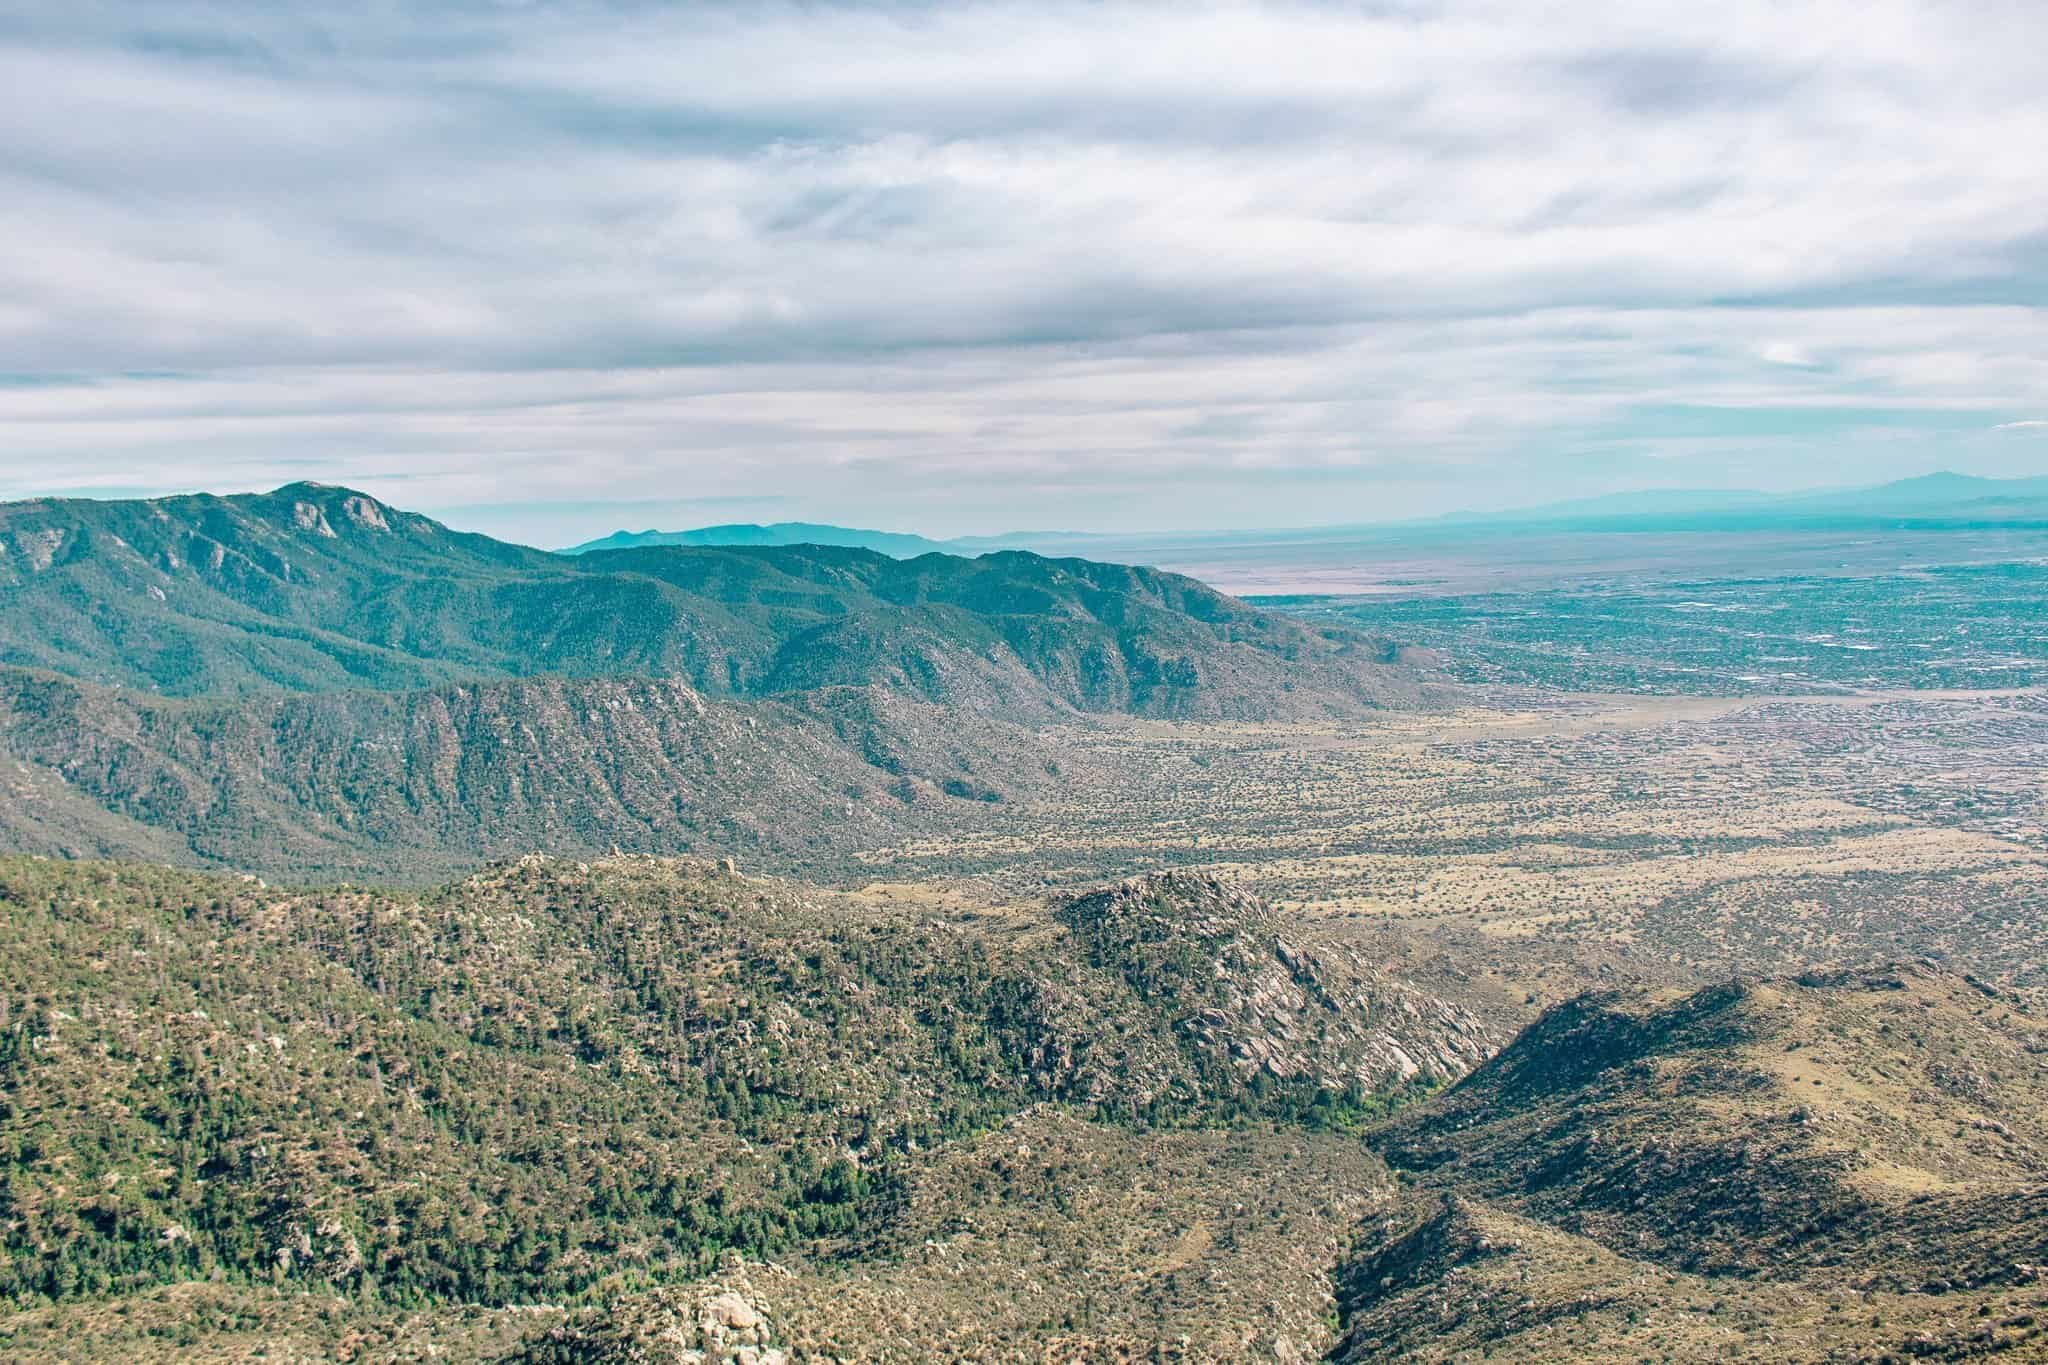 View from Sandia Peak - The Next Trip